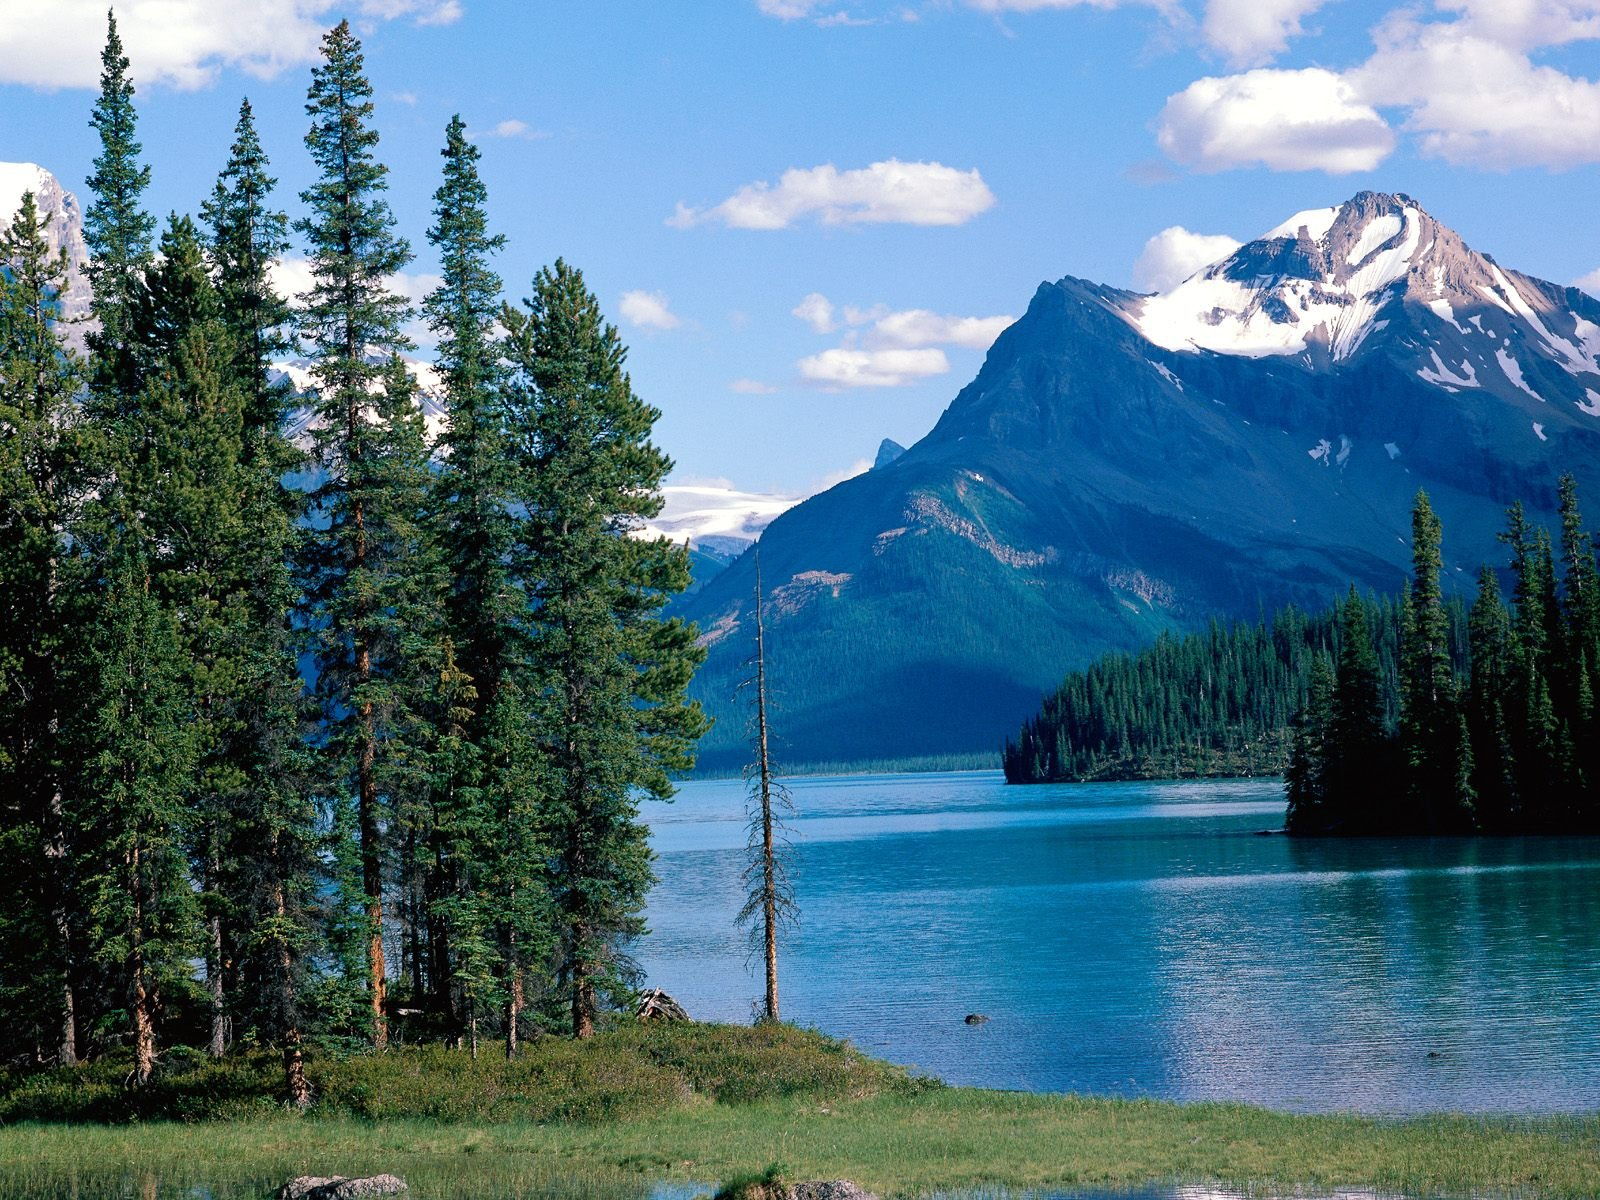 Park Alberta Canada Wallpapers Pictures Photos and Backgrounds 1600x1200